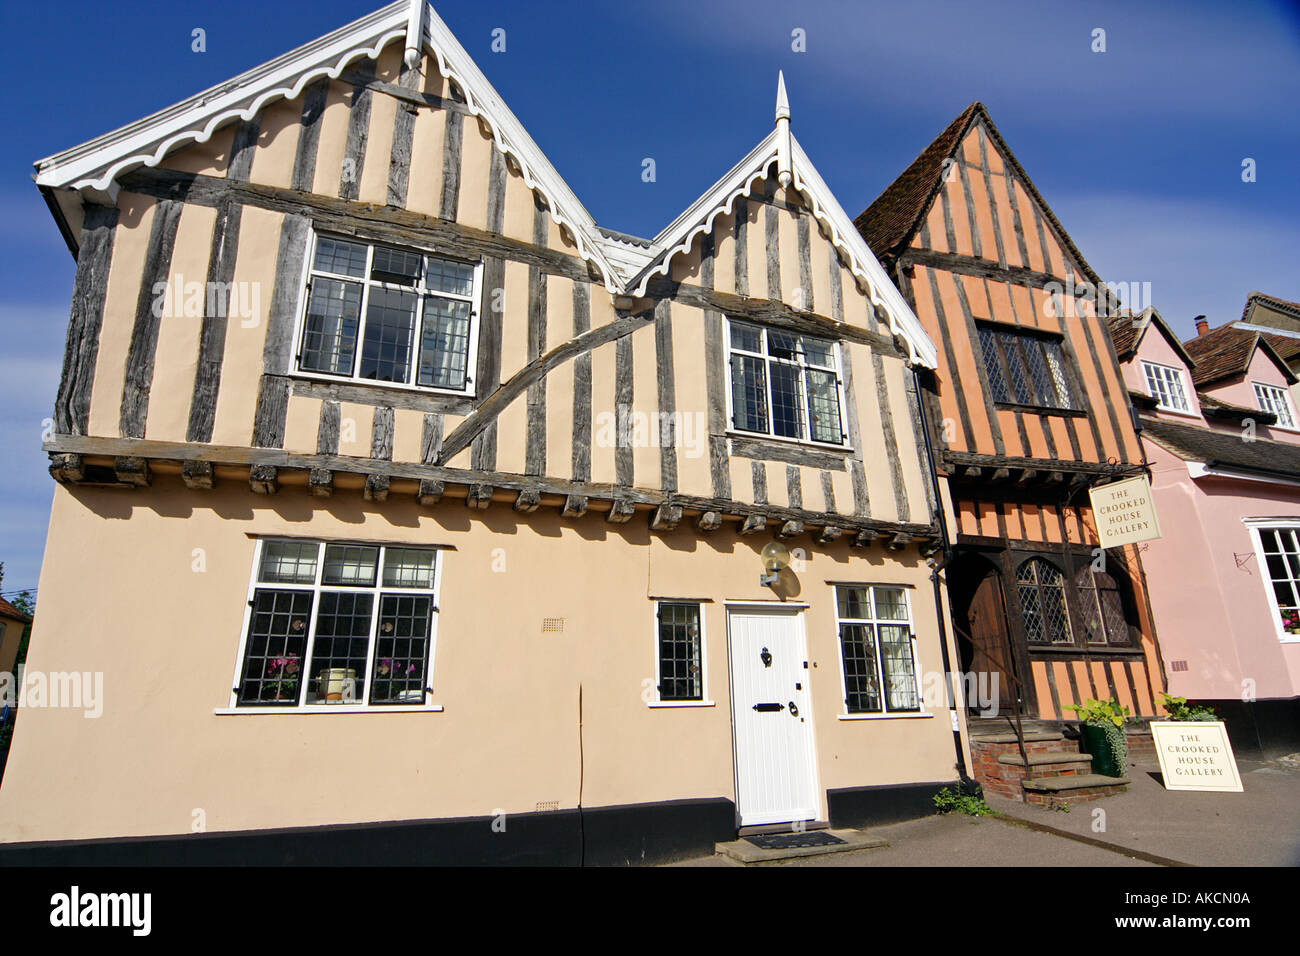 Medieval timber framed houses including the Crooked House on High Street Lavenham Suffolk East Anglia UK - Stock Image